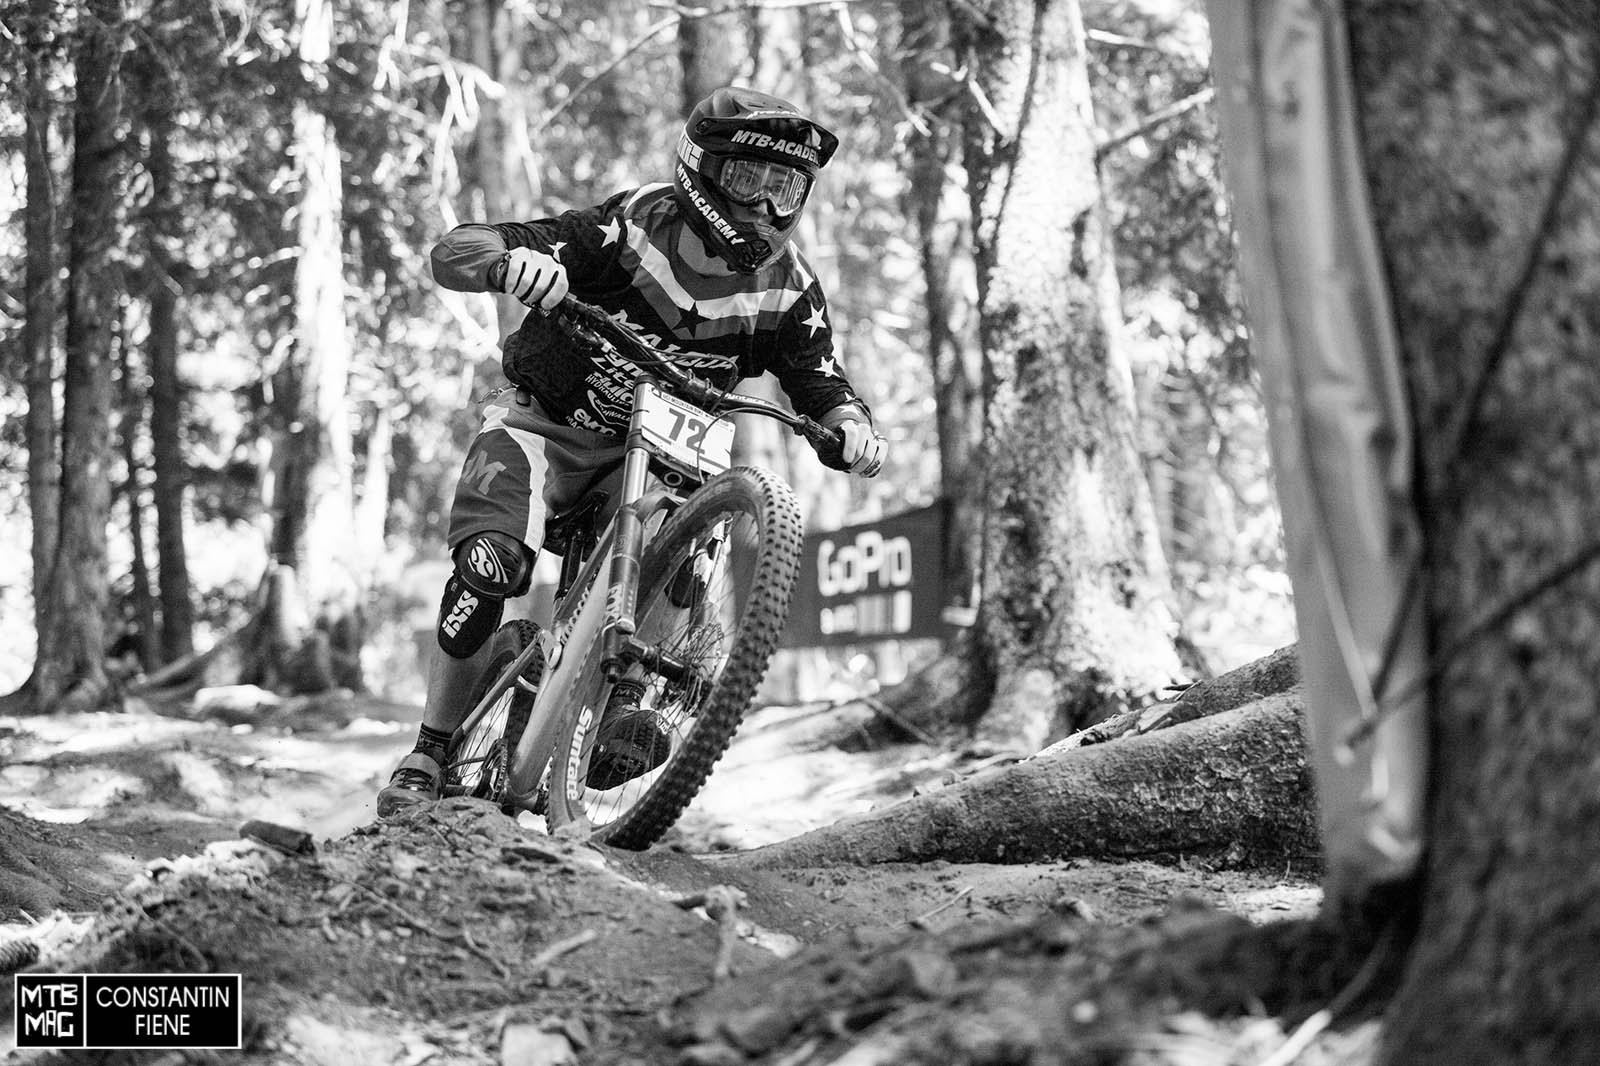 Jasper Jauch in the wood section